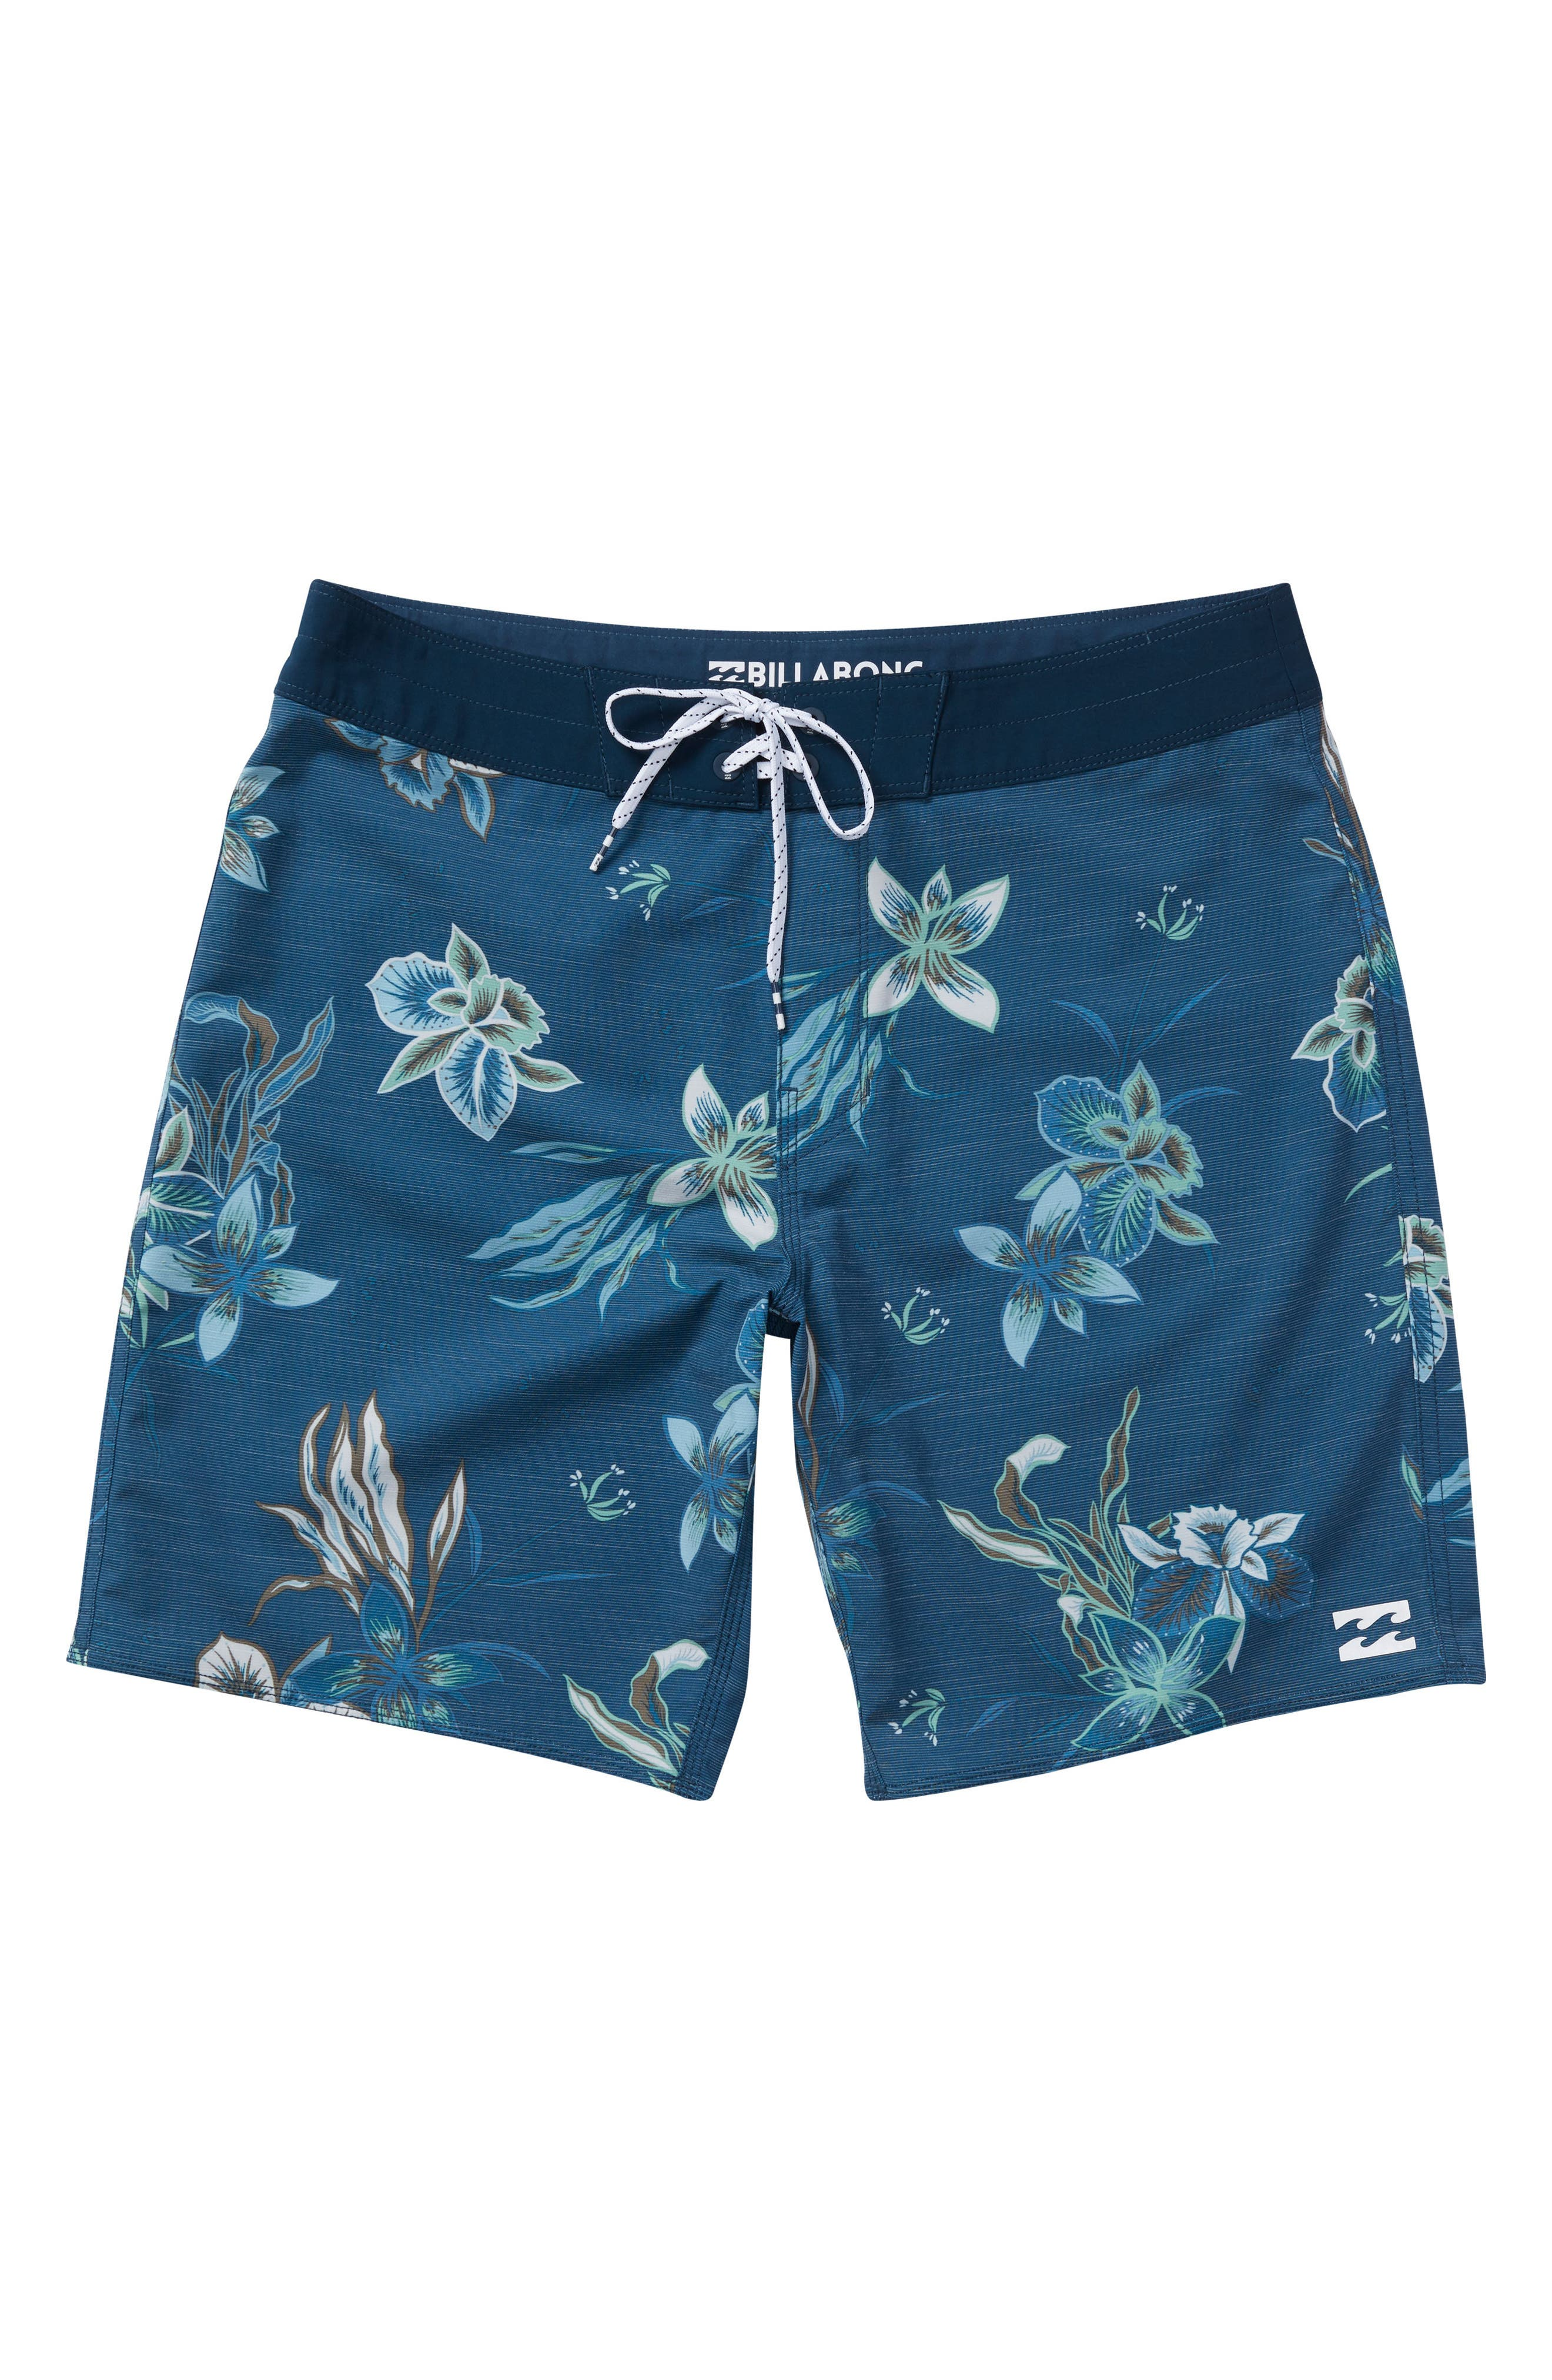 Sundays X Board Shorts,                             Main thumbnail 1, color,                             Navy